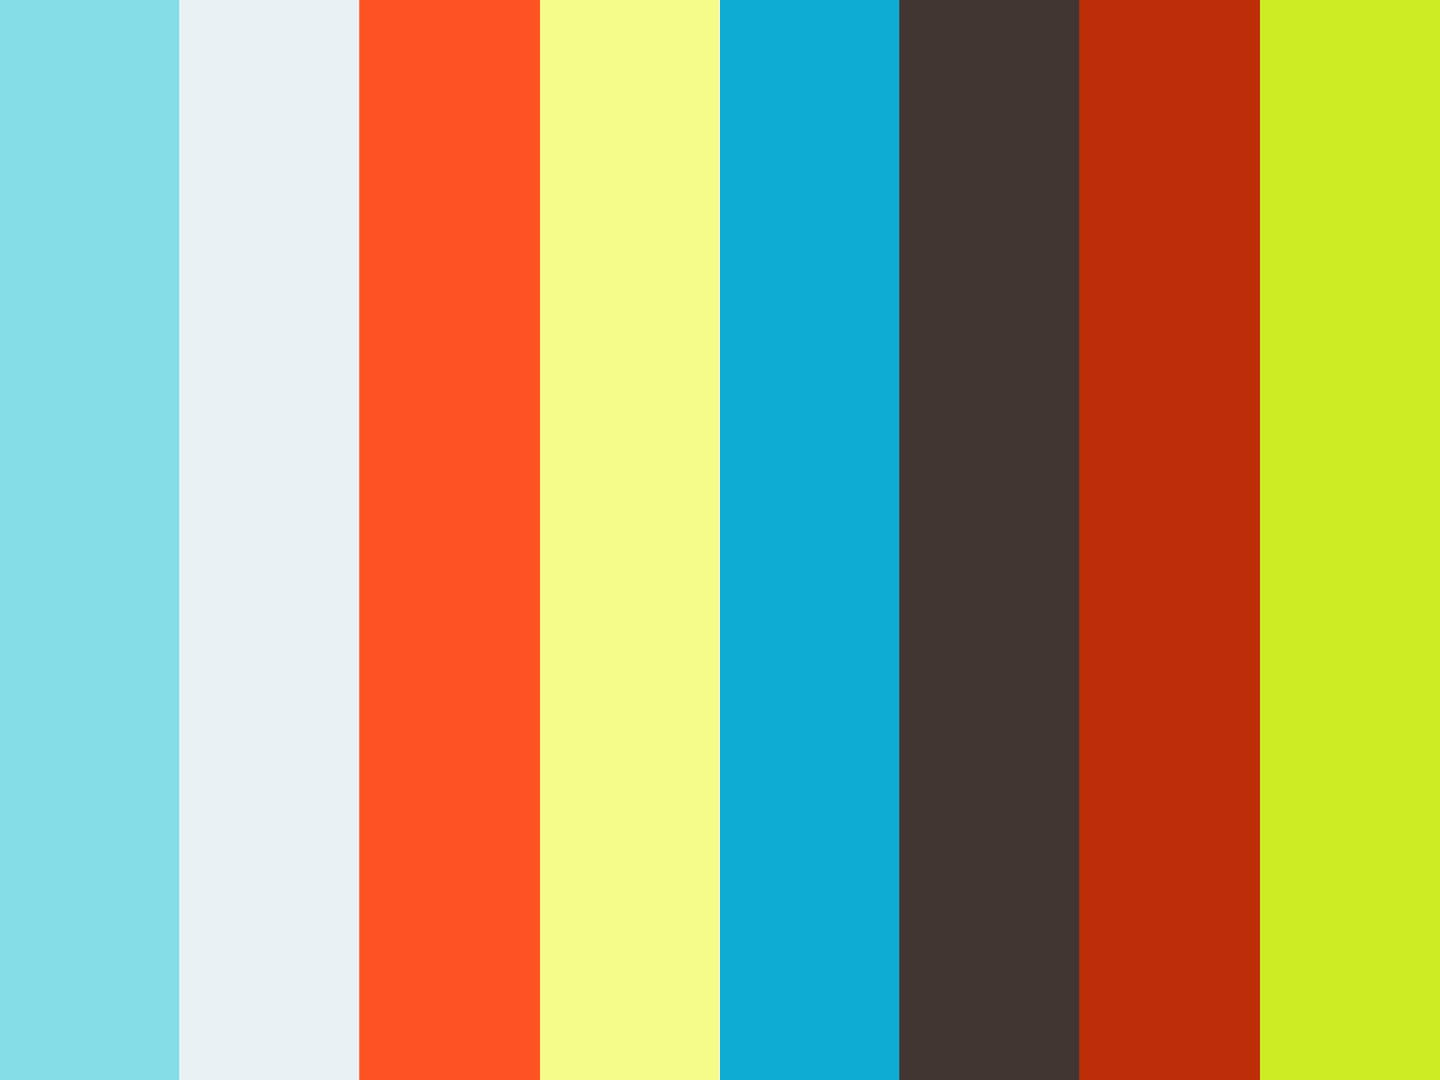 Virtual families 2 completed house with all females on vimeo for Virtual families 2 decoration